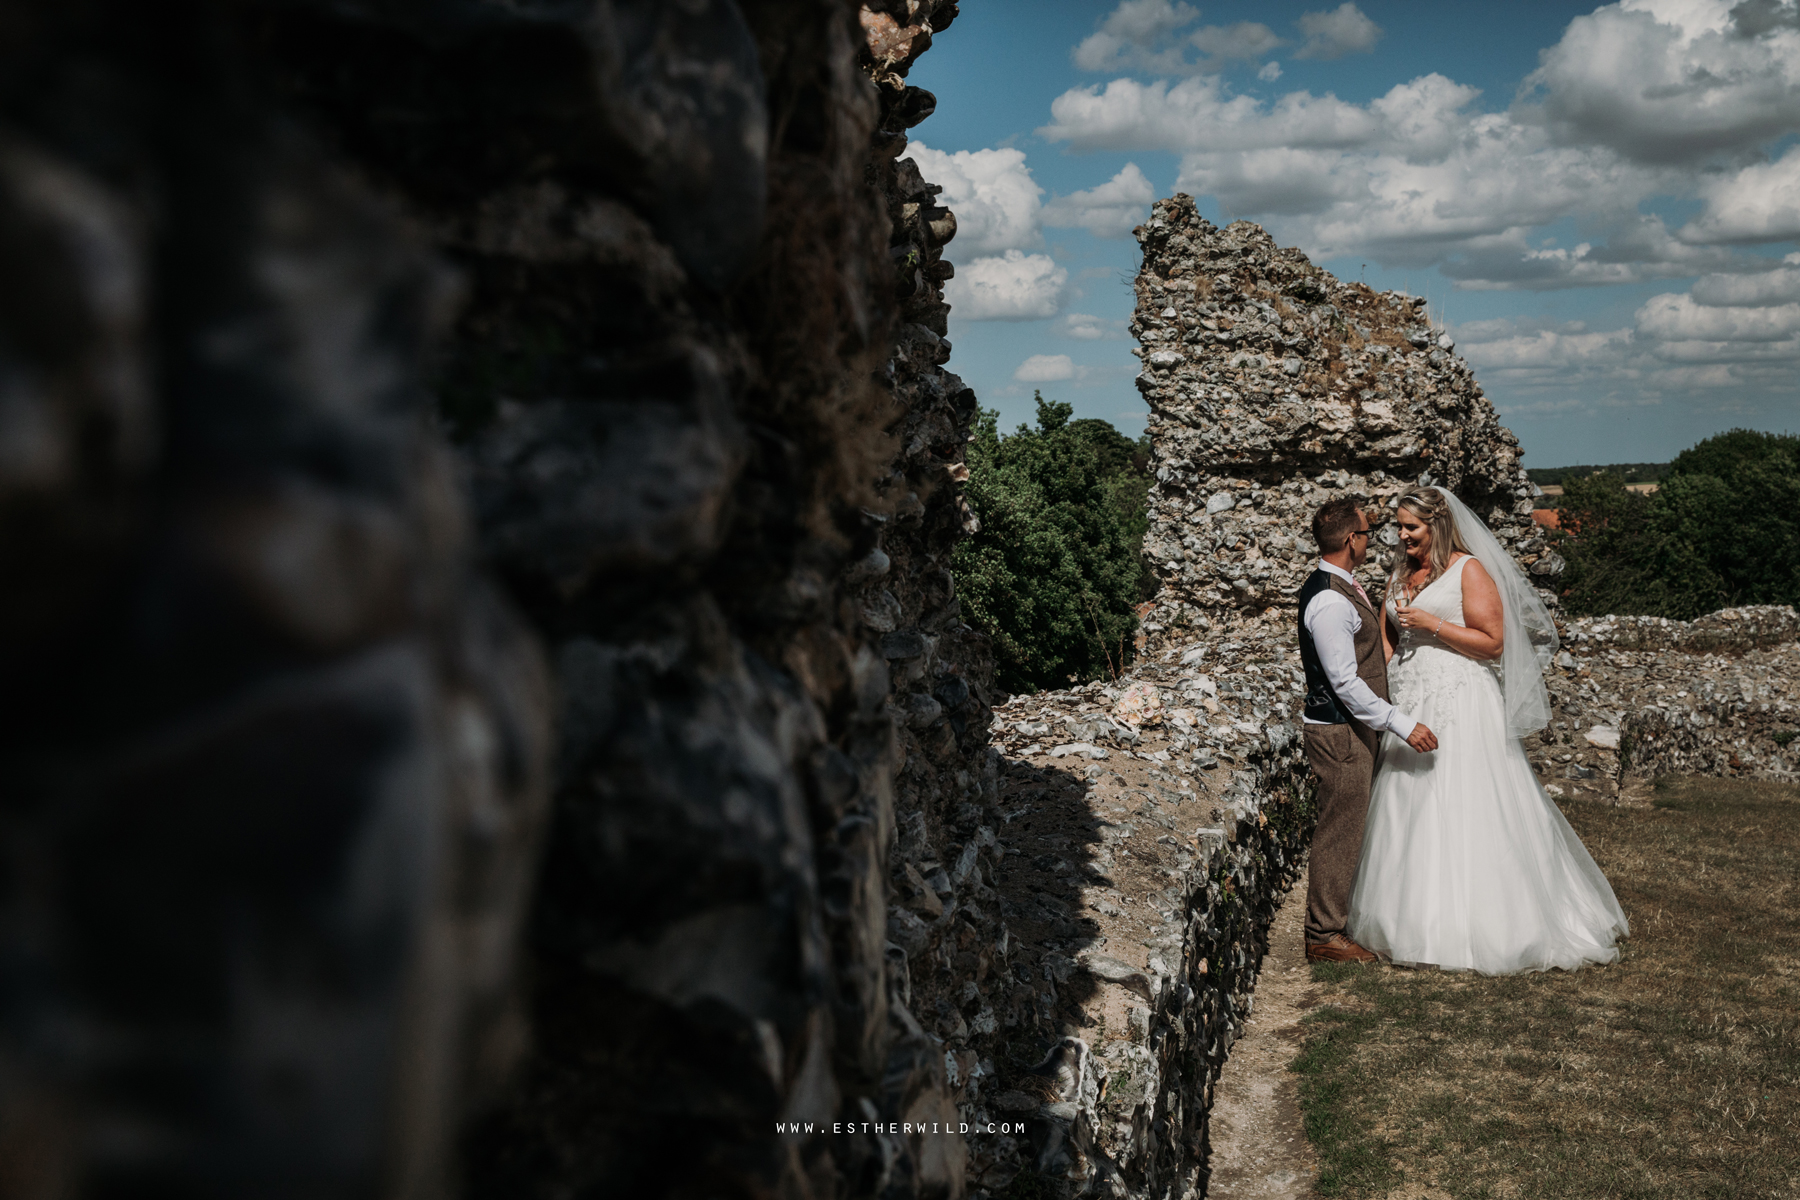 Swaffham_Wedding_Castle_Acre_Norfolk_Esther_Wild_Photographer_Wedding_Photography_3R8A1399.jpg